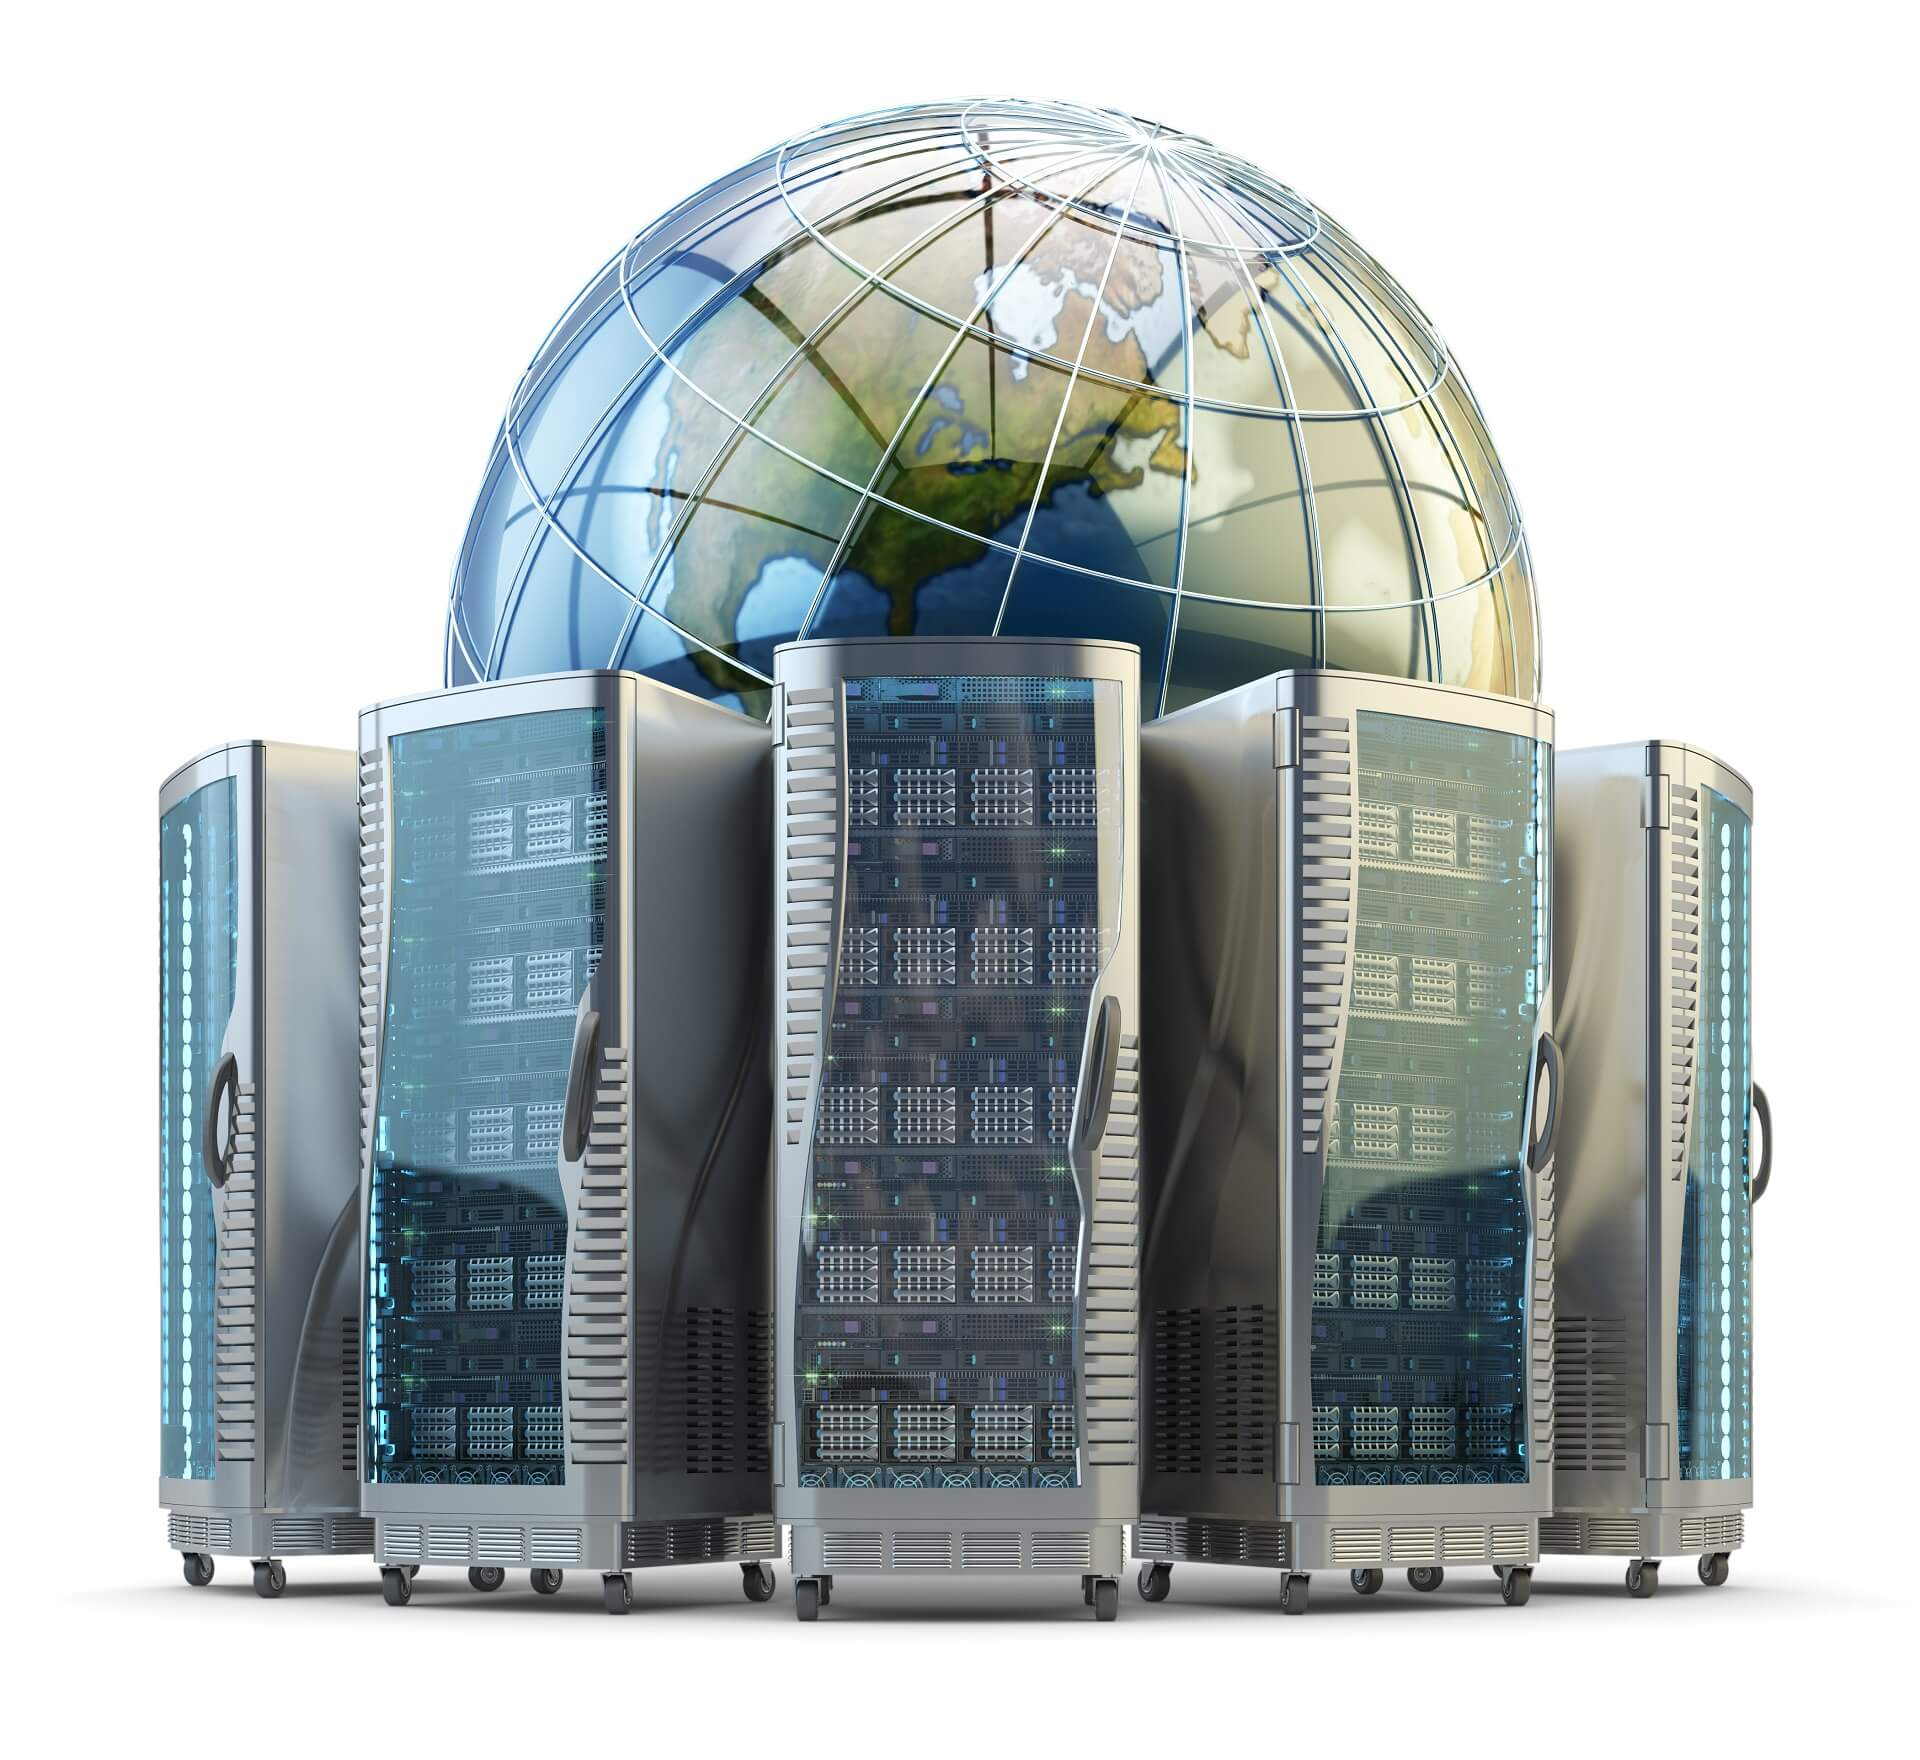 internet-and-computer-network-technology-global-data-storage-concept-server-racks-with-telecommunication-equipment-around-the-earth-globe-isolated-on-white